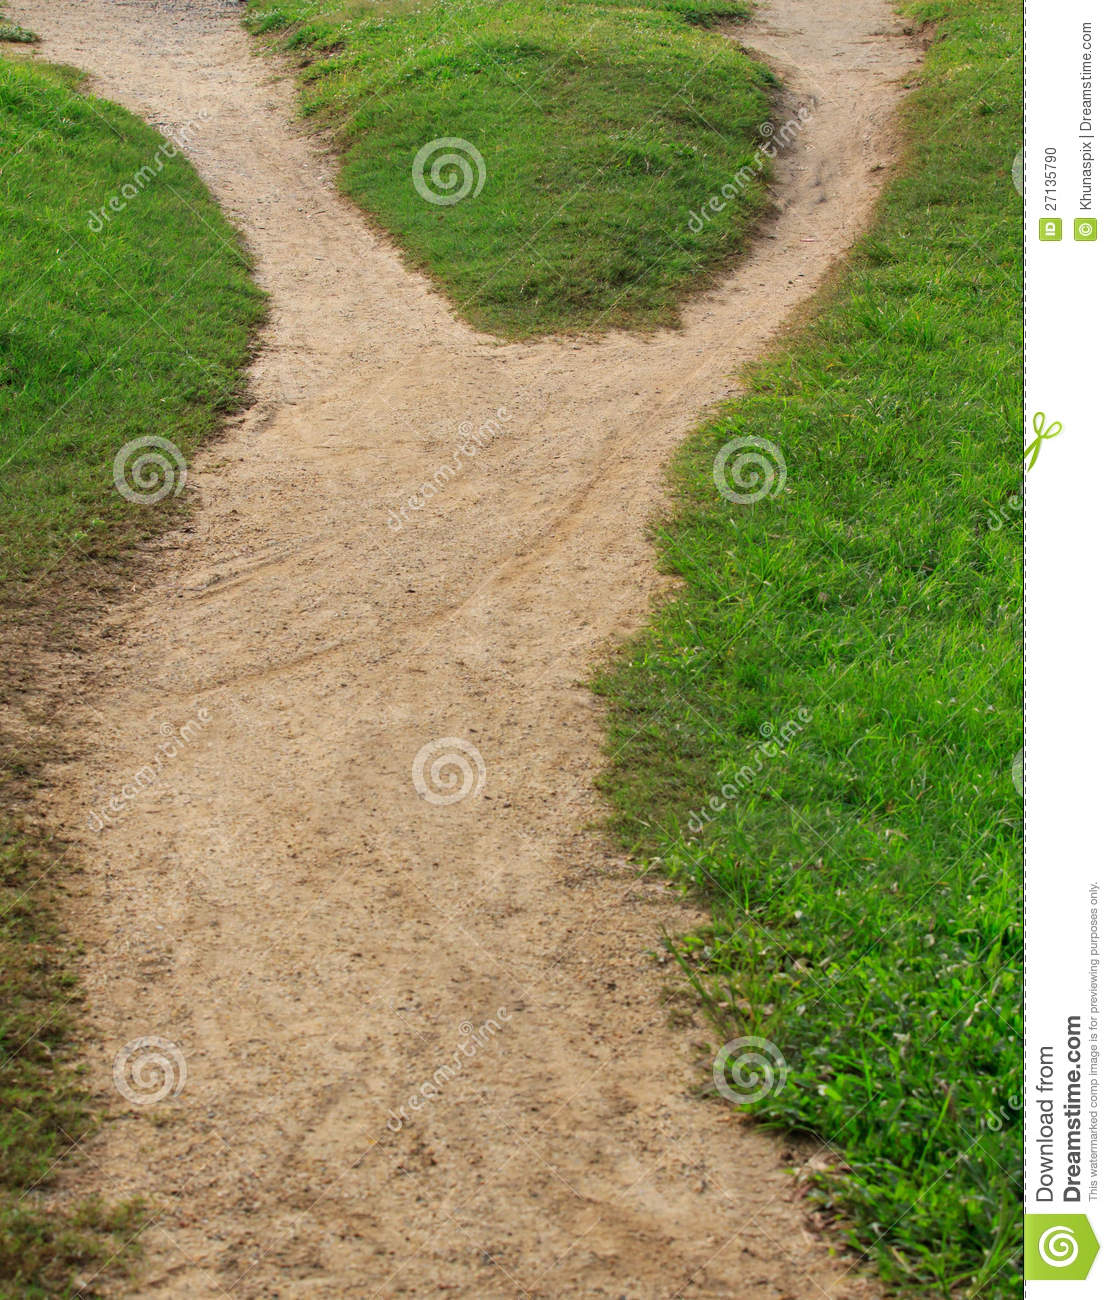 Soil trail and green grass separated two way stock photo for Soil and green